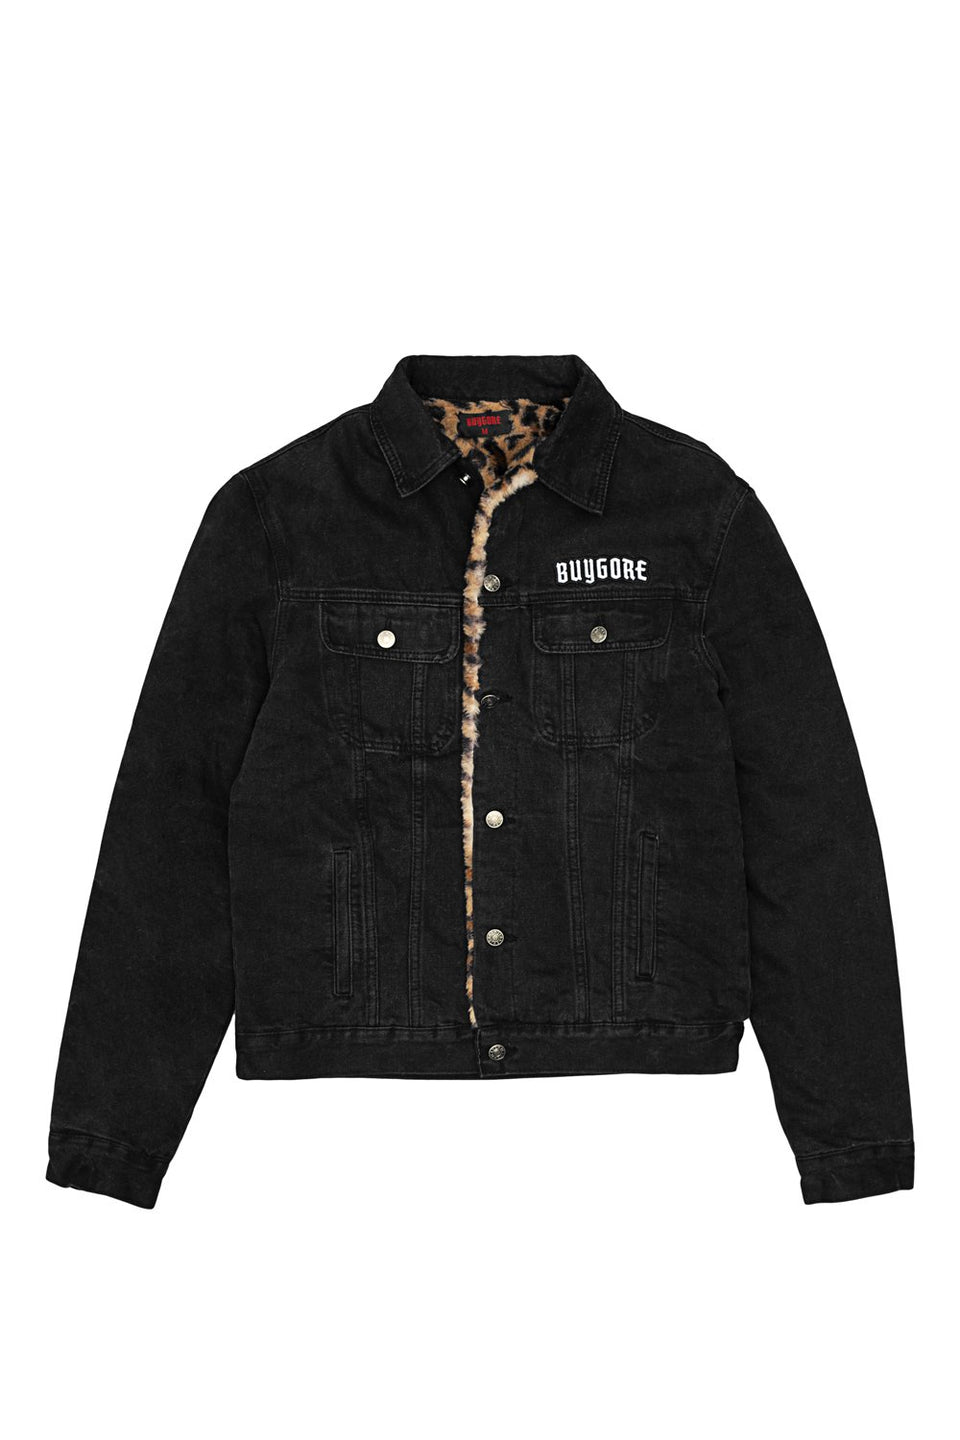 Buygore - Denim Jacket